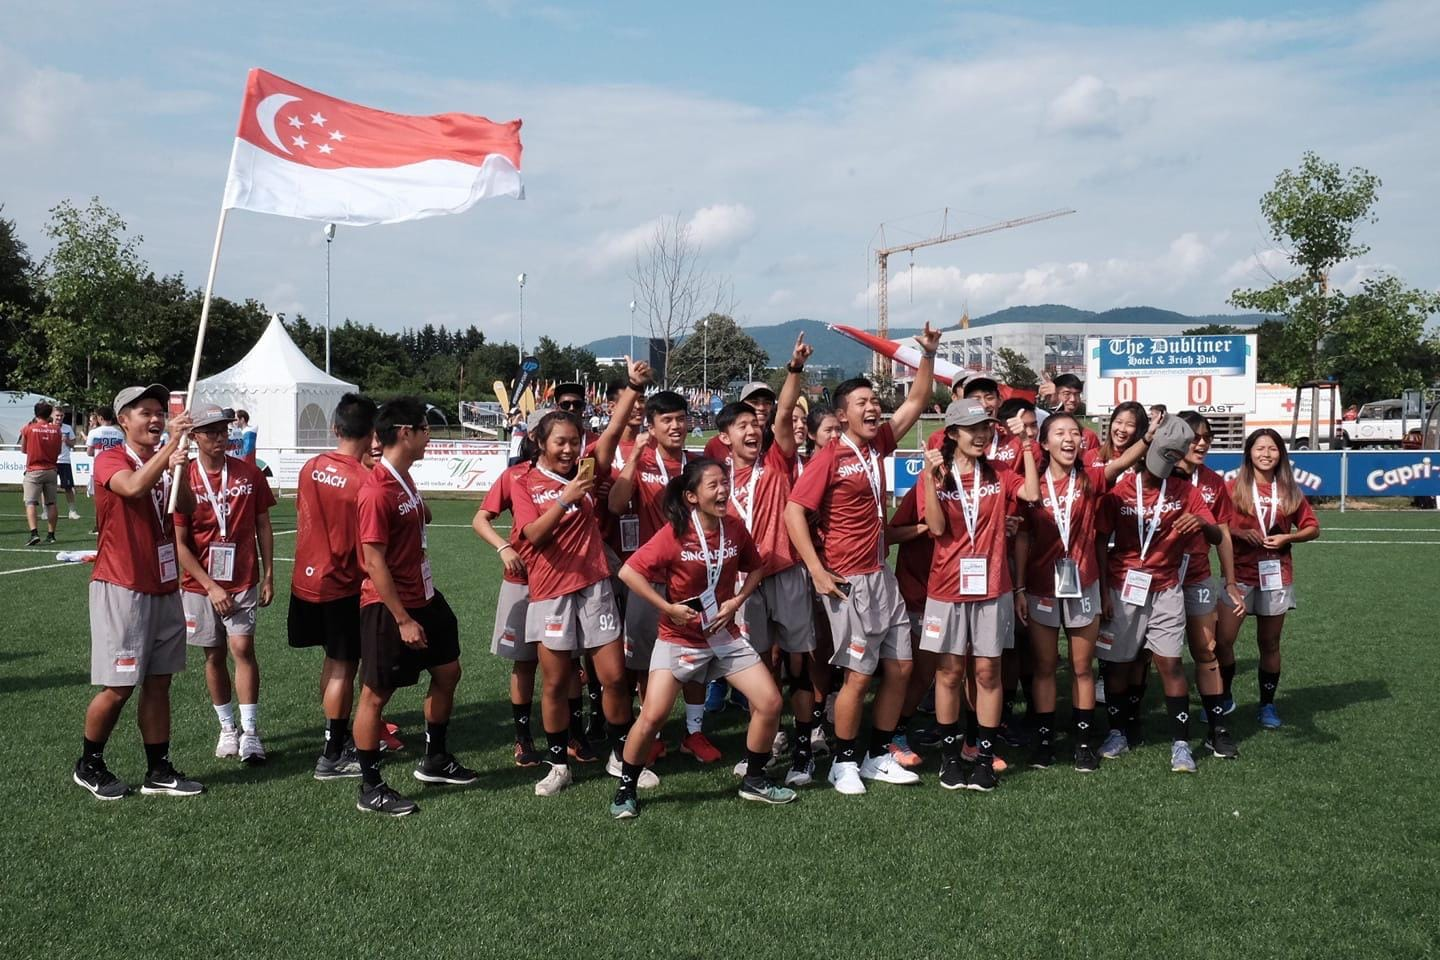 Singapore ultimate frisbee team ranks #3 in World Under-24 Ultimate Championships, clinches bronze medal - Alvinology